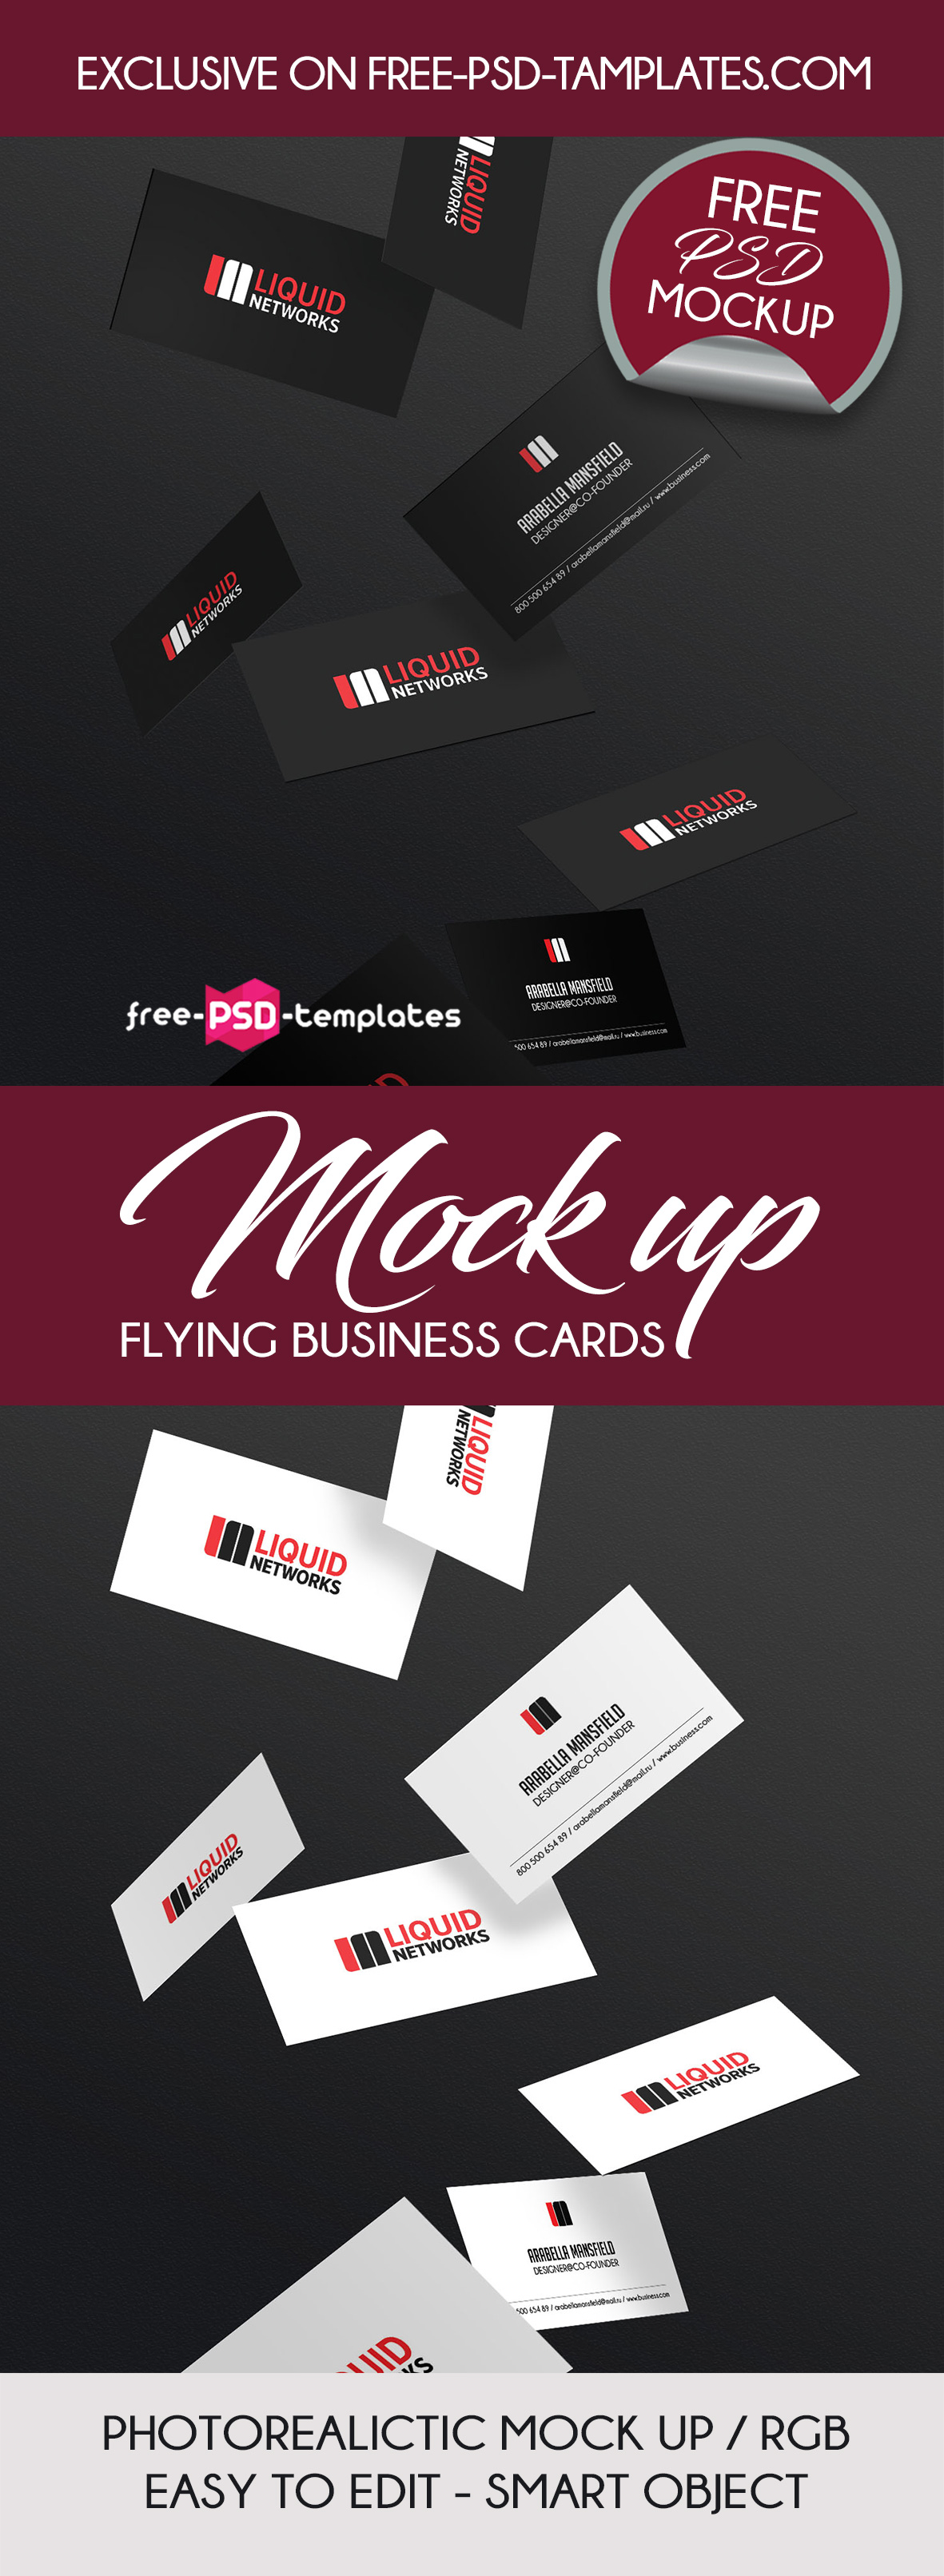 bigpreview_mock-up-flying-business-card-psd-template